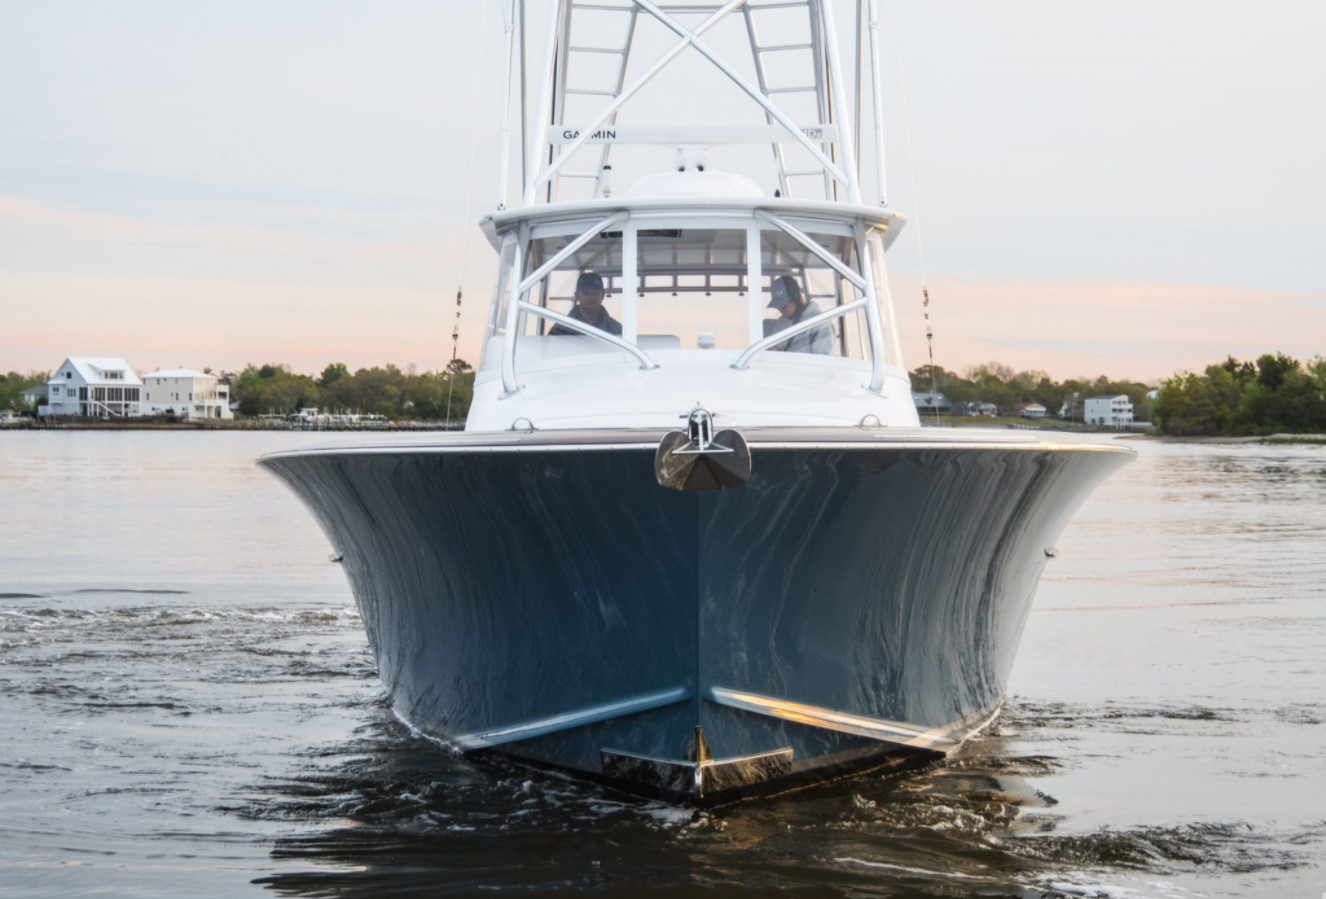 Winter Custom Yachts' 46' Uptight